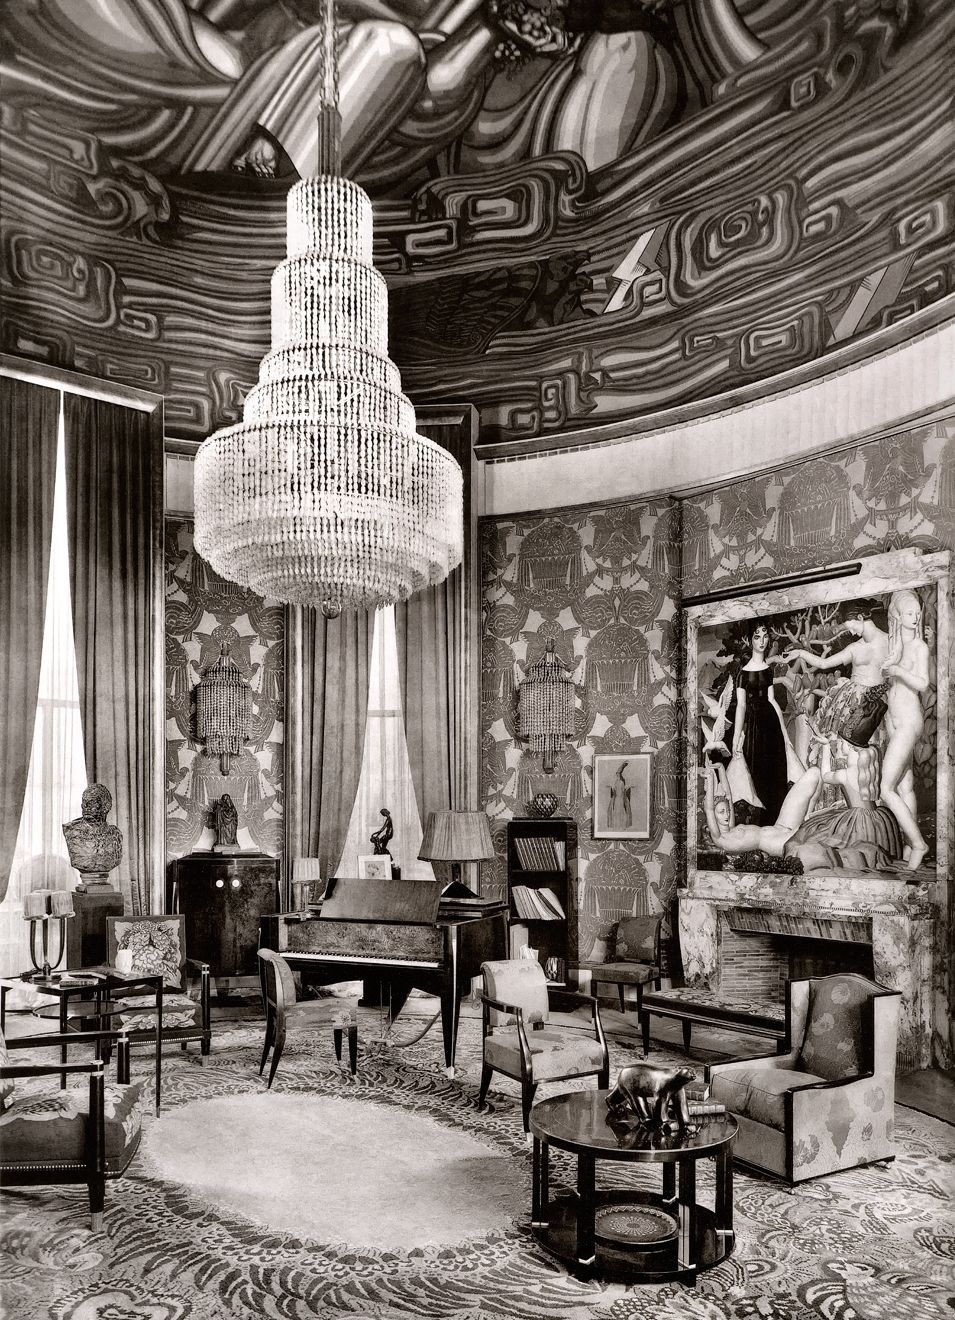 Salon Art Et Deco Paris Ruhlmann S Grand Salon Exhibit At The 1925 Paris Exposition